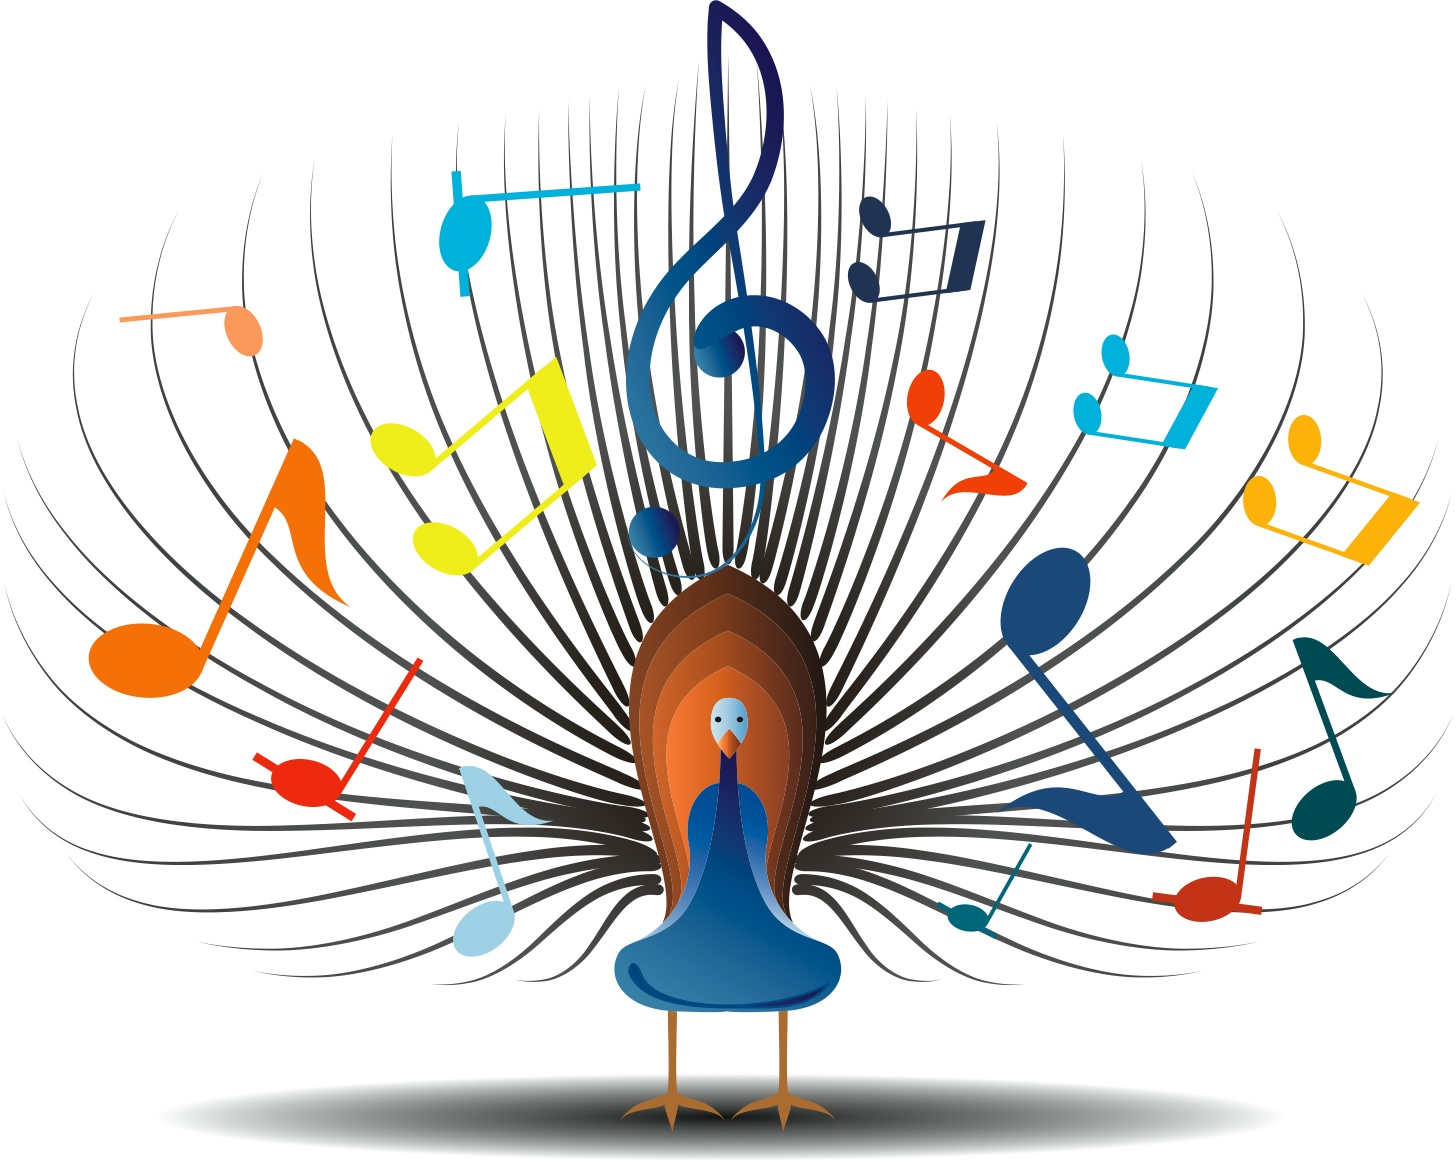 clipart images music - photo #43